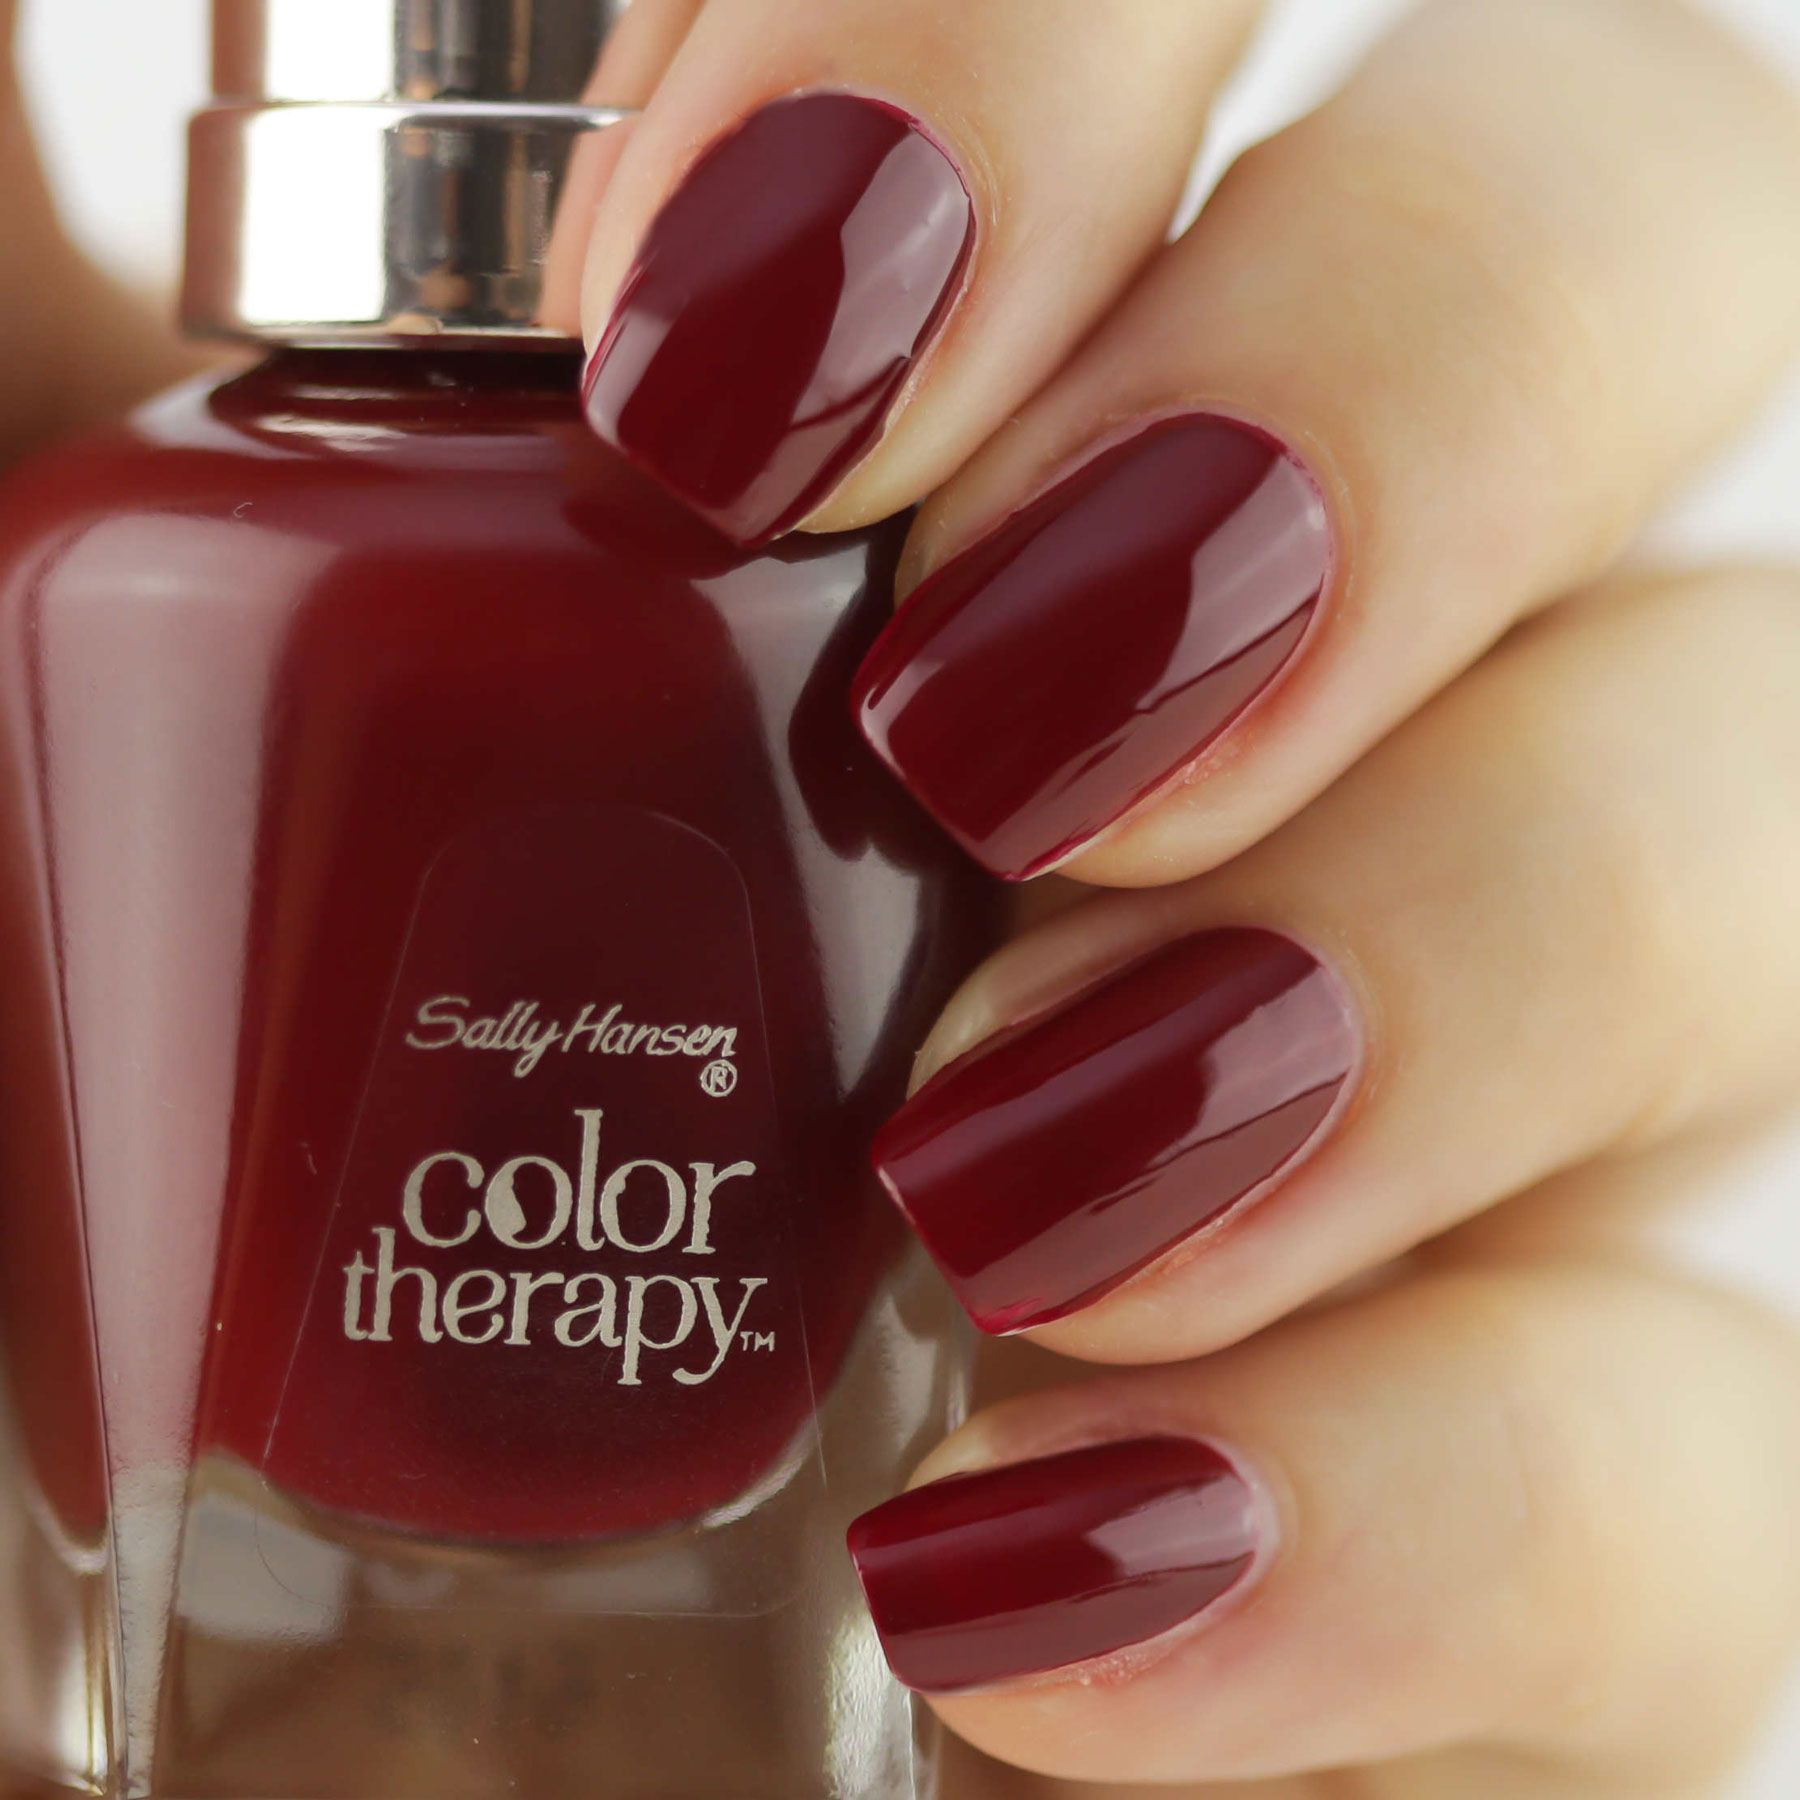 Colour therapy for marriage - Sally Hansen Color Therapy Unwined